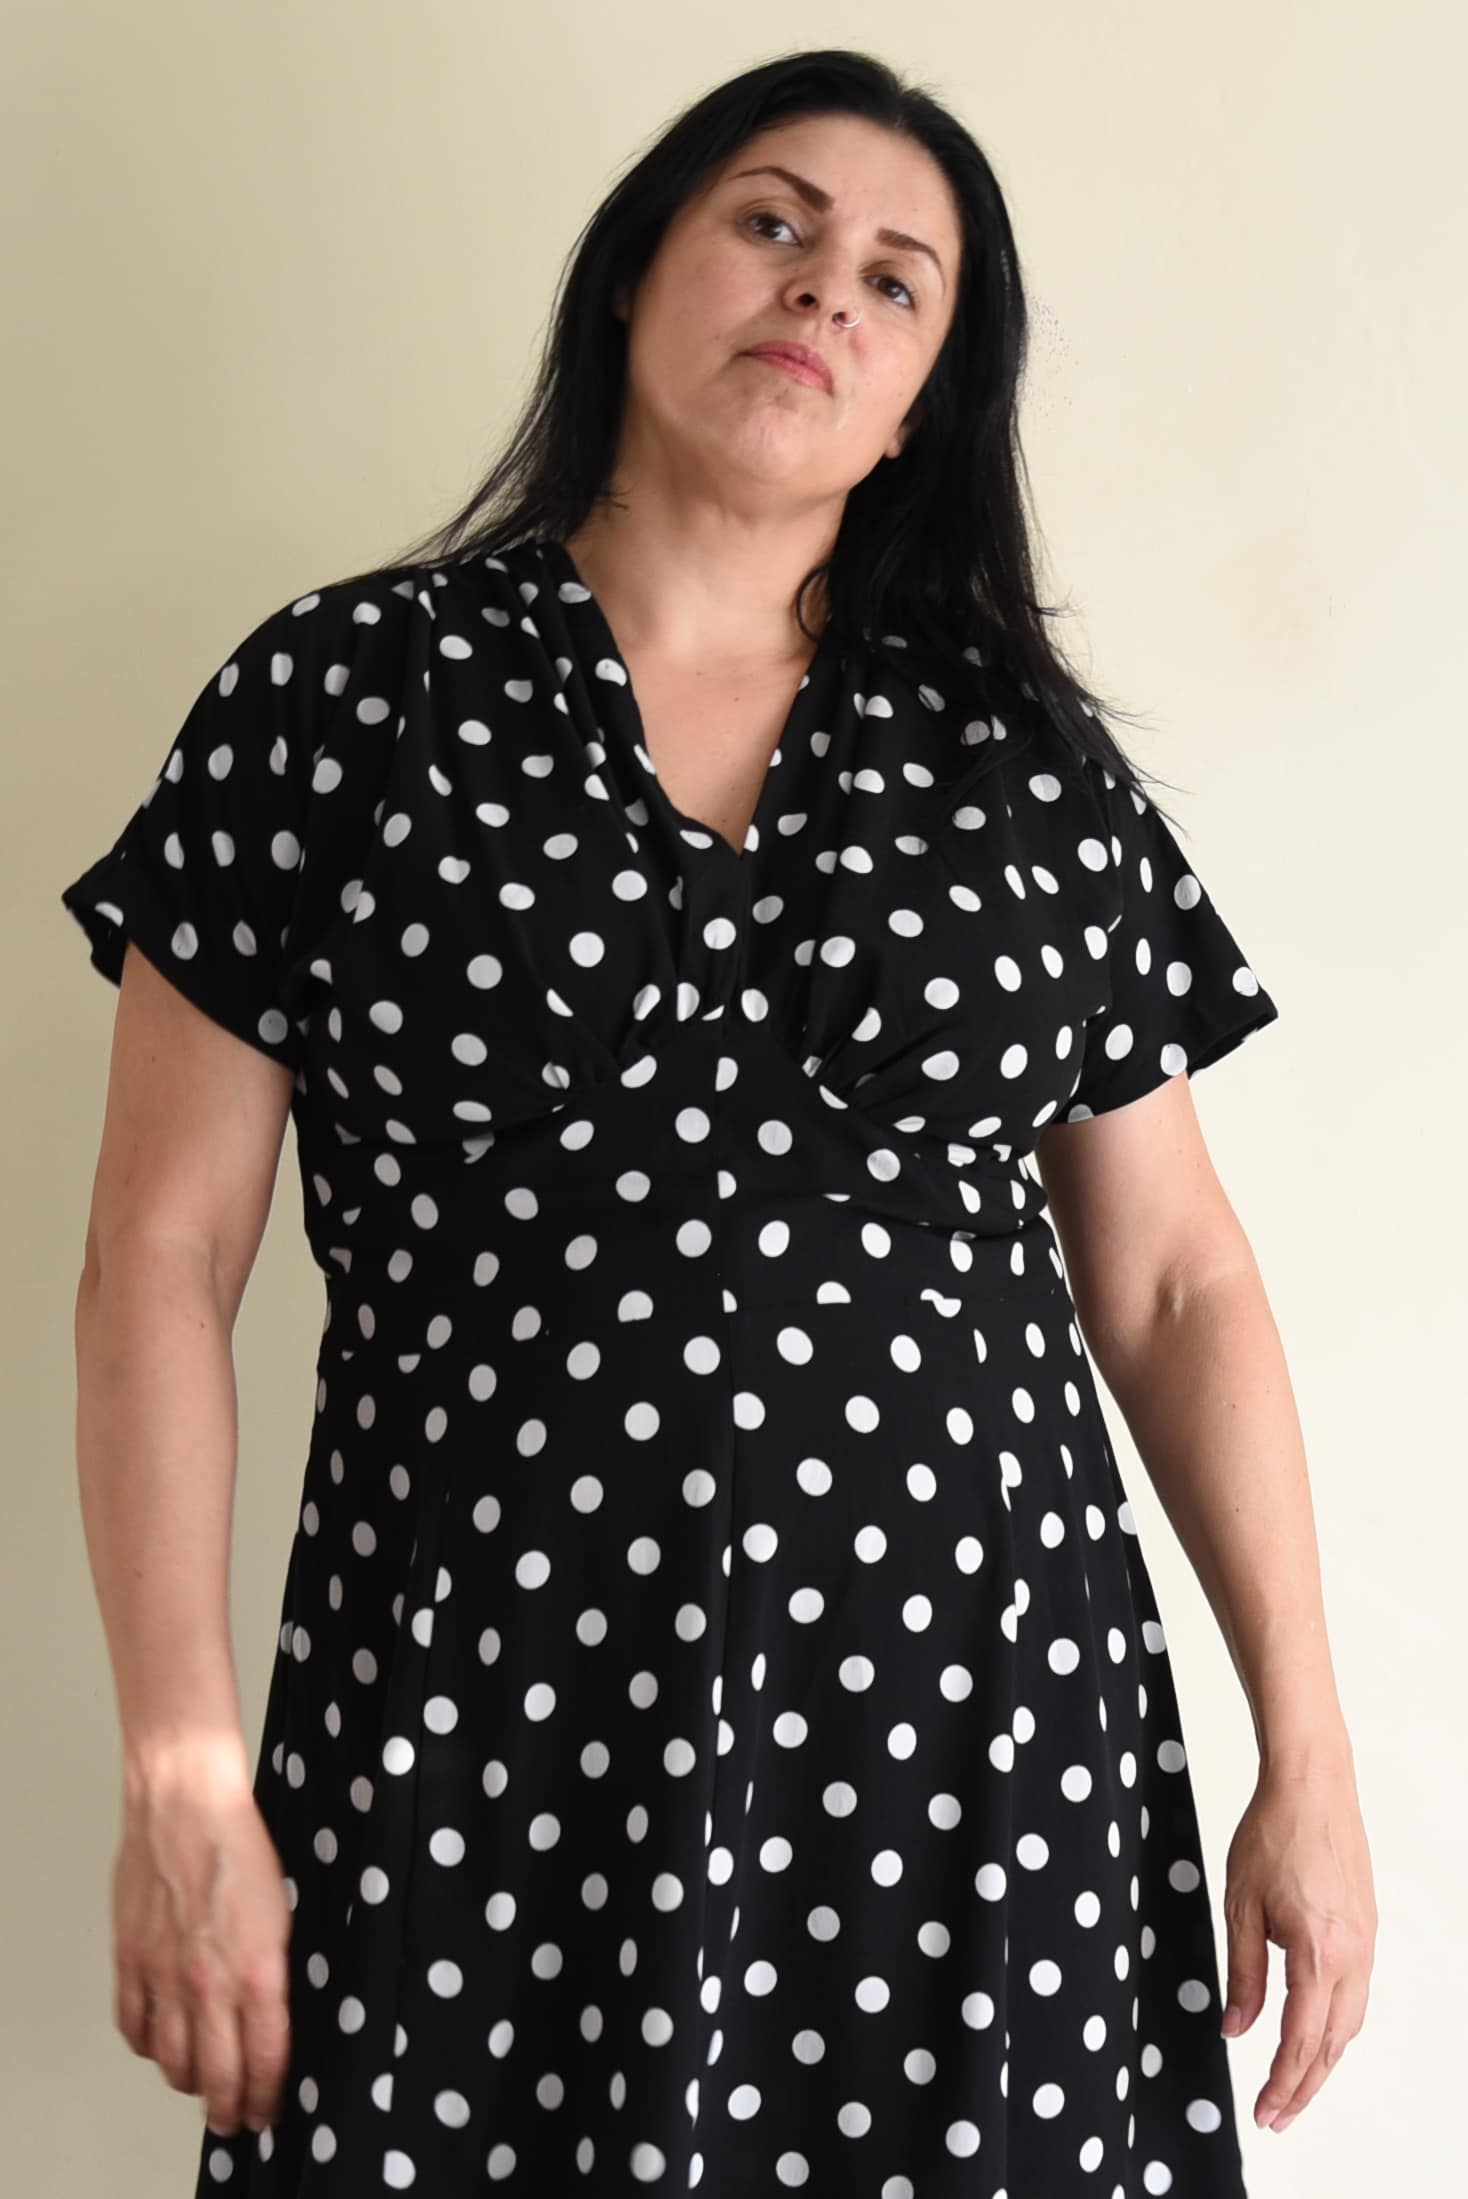 Image of woman with long black hair standing facing the camera wearing a black and white polka dotted Myrna